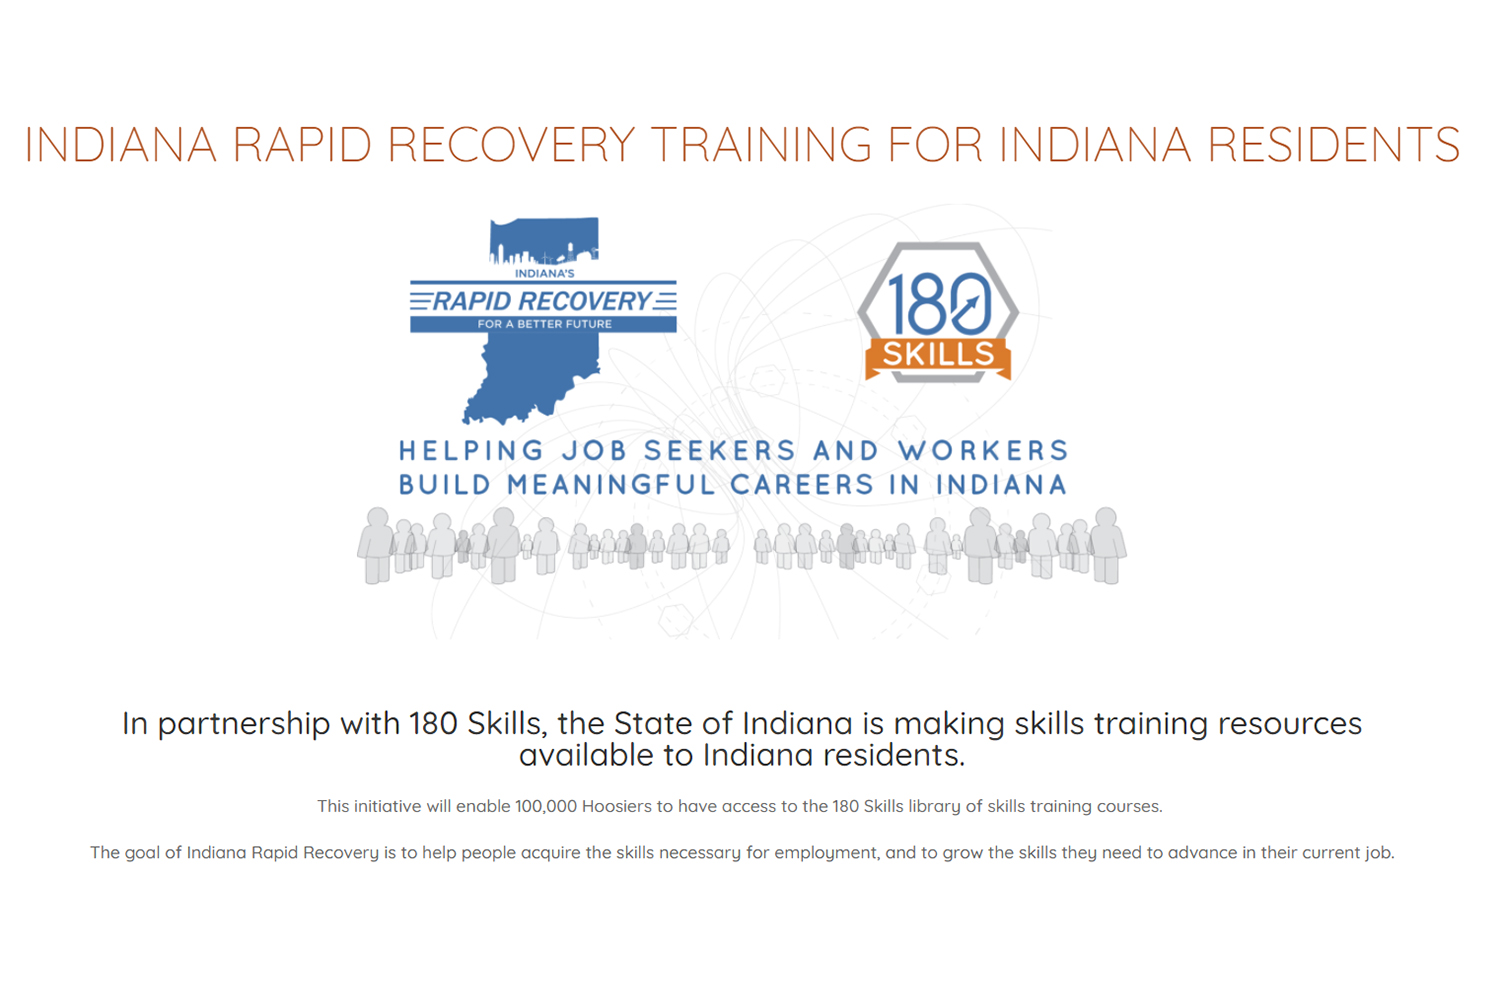 An infographic from indianapolis-based 180 Skills